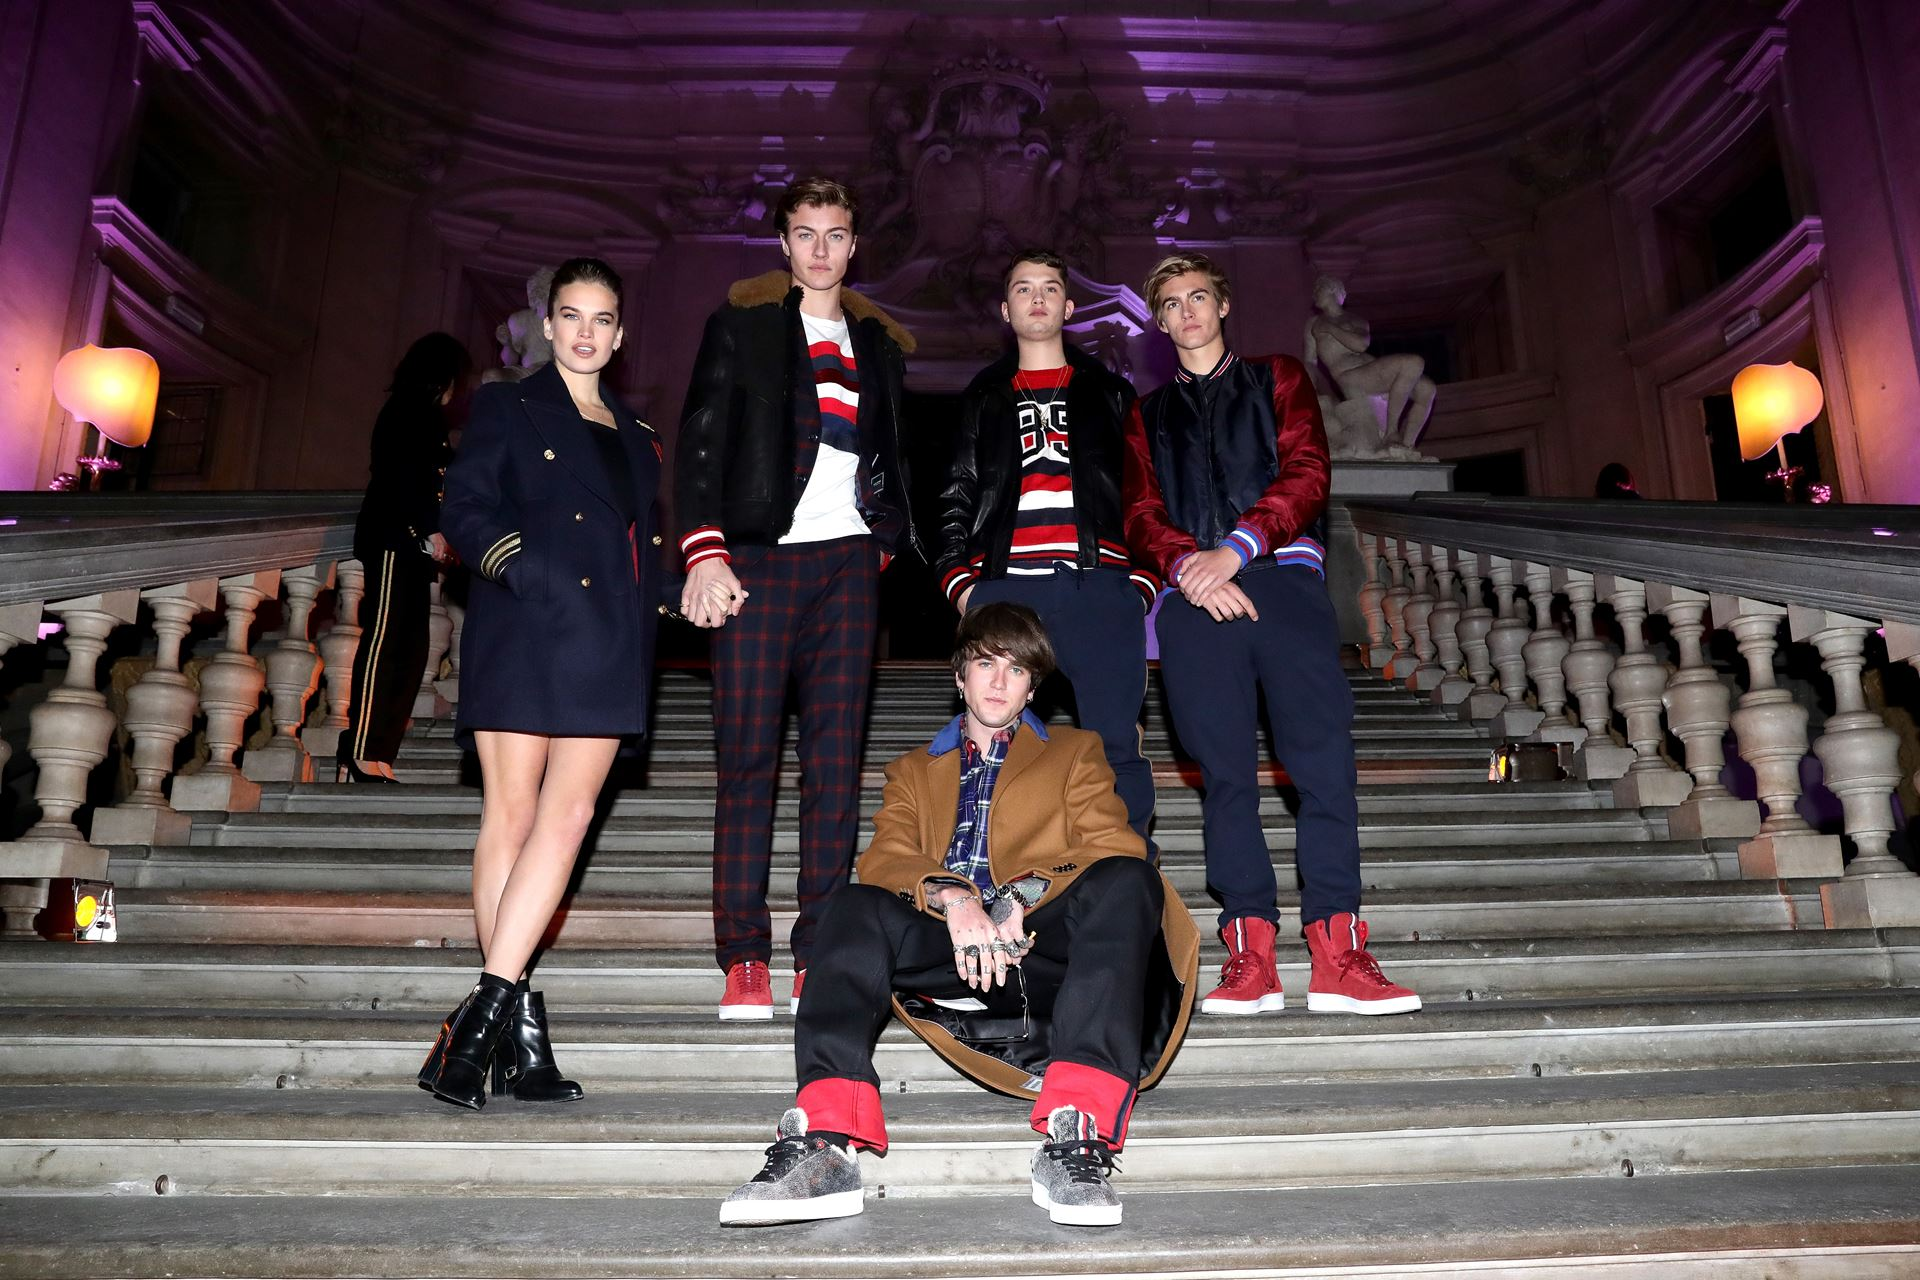 webinstance Stormi Brie Lucky Blue Smith Rafferty Law Gabriel Kane Lewis and Presley Gerber 1 - style - Tommy Hilfiger Fall/Winter 2017 Review - Tommy Hilfiger, Pitti Uomo, Menswear, Fashion - Tommy Hilfiger Fall/Winter 2017 Review